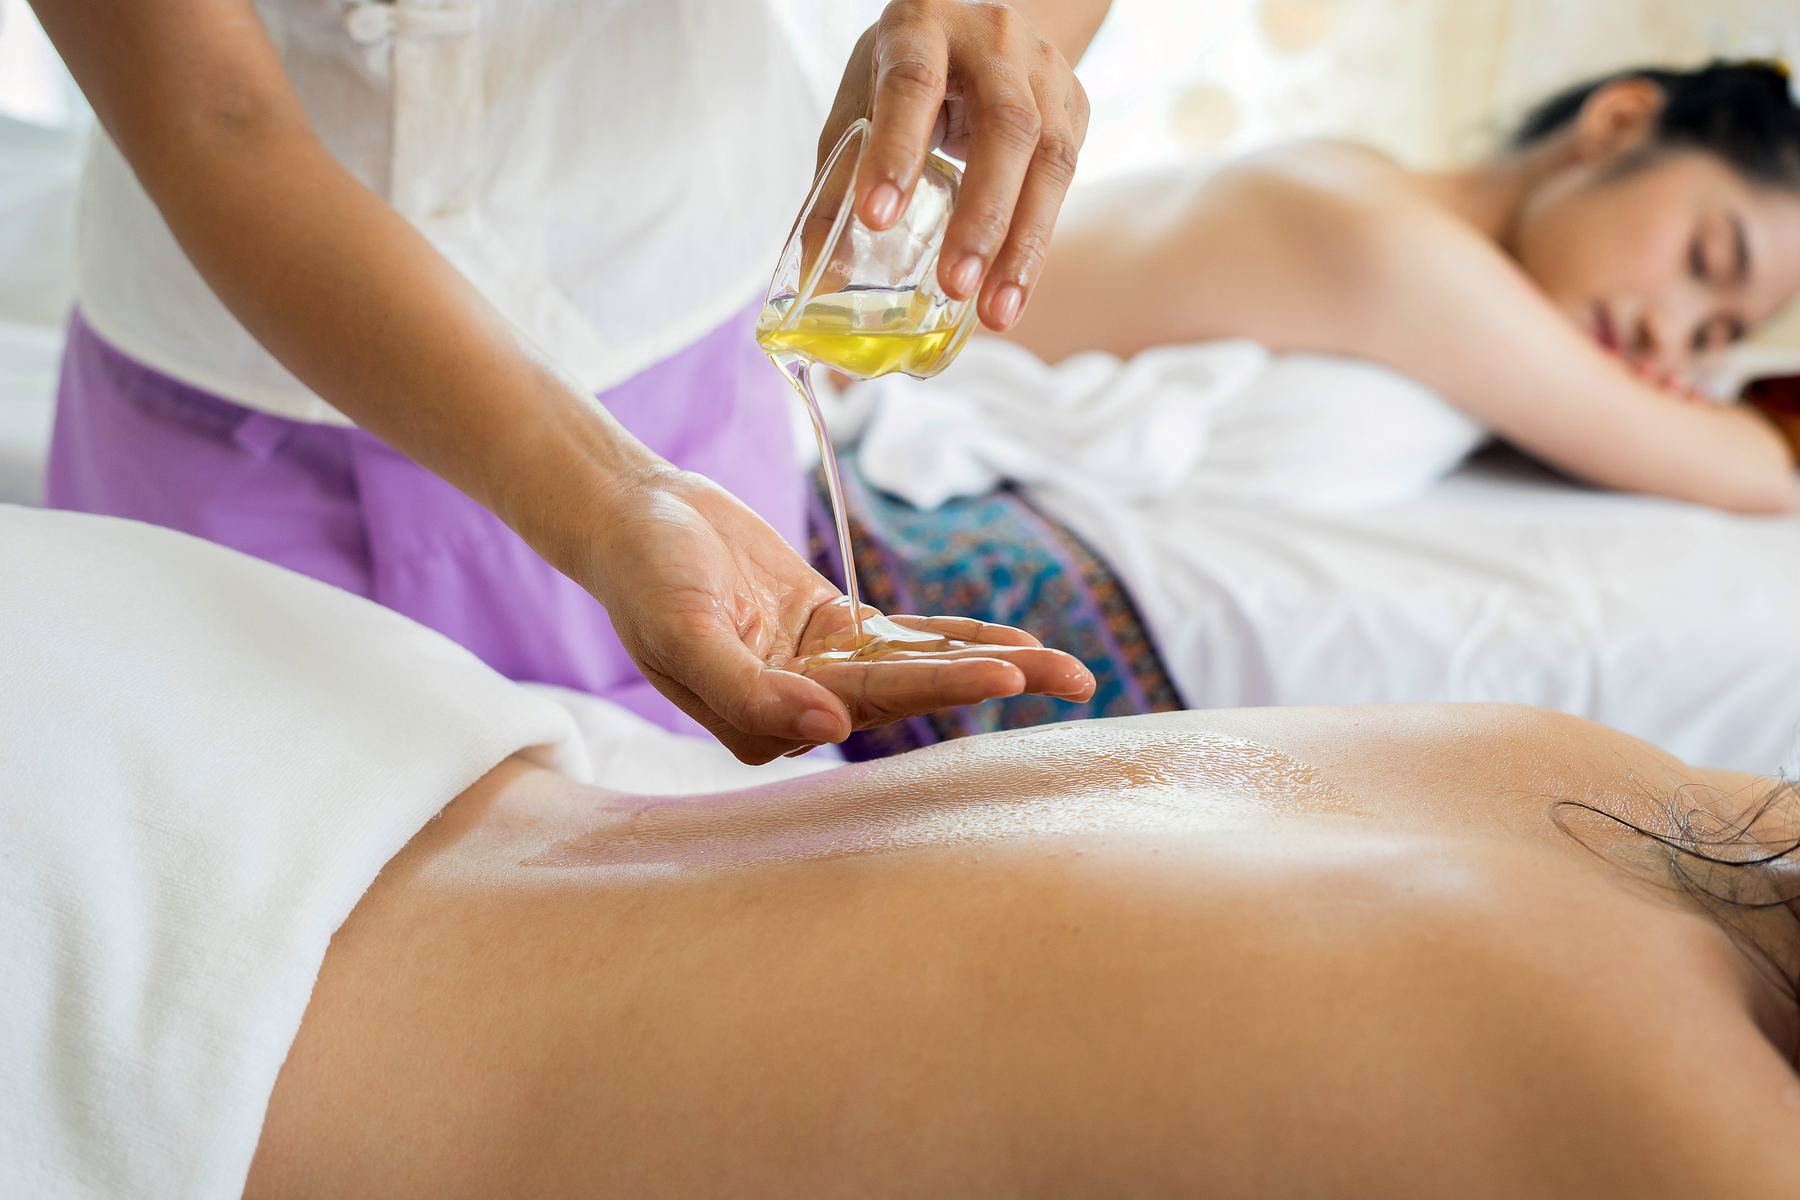 two women on massage tables at a day spa